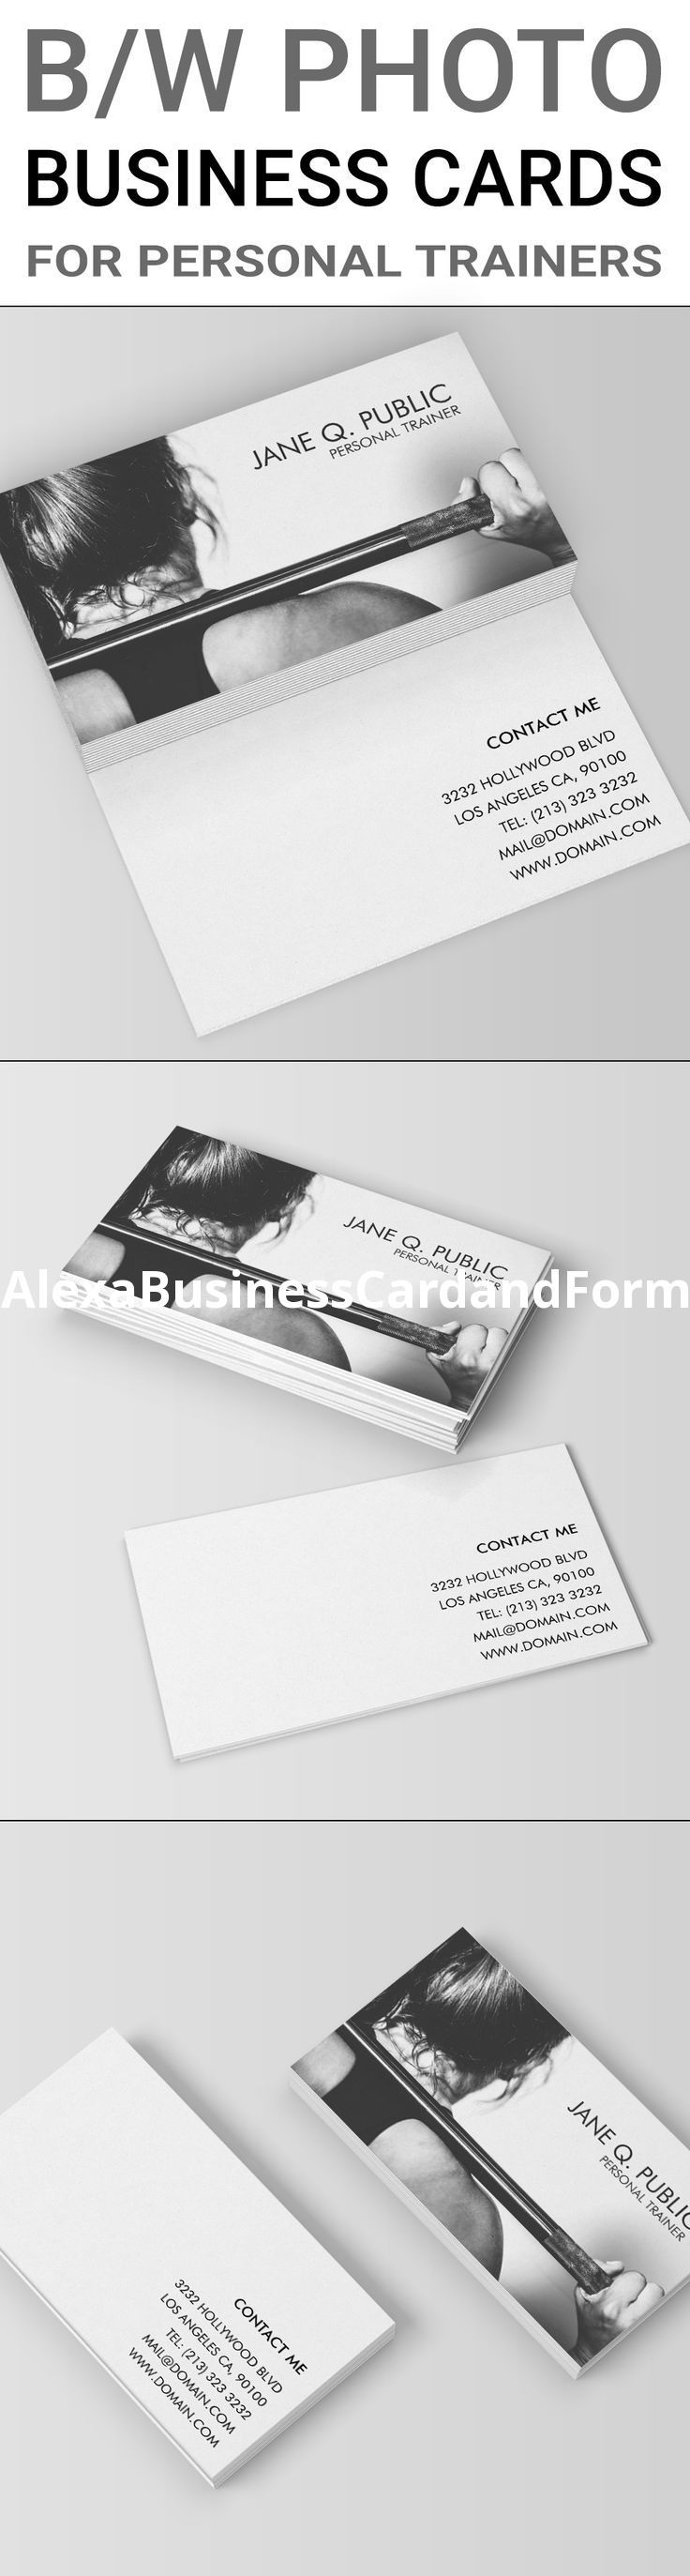 Buypower Business Card Plus Capital One Buypower Business Karte Sowie Buypower Business Kreditkarte #visitenkarte #visitenkartedesign – Visitenkarte Design